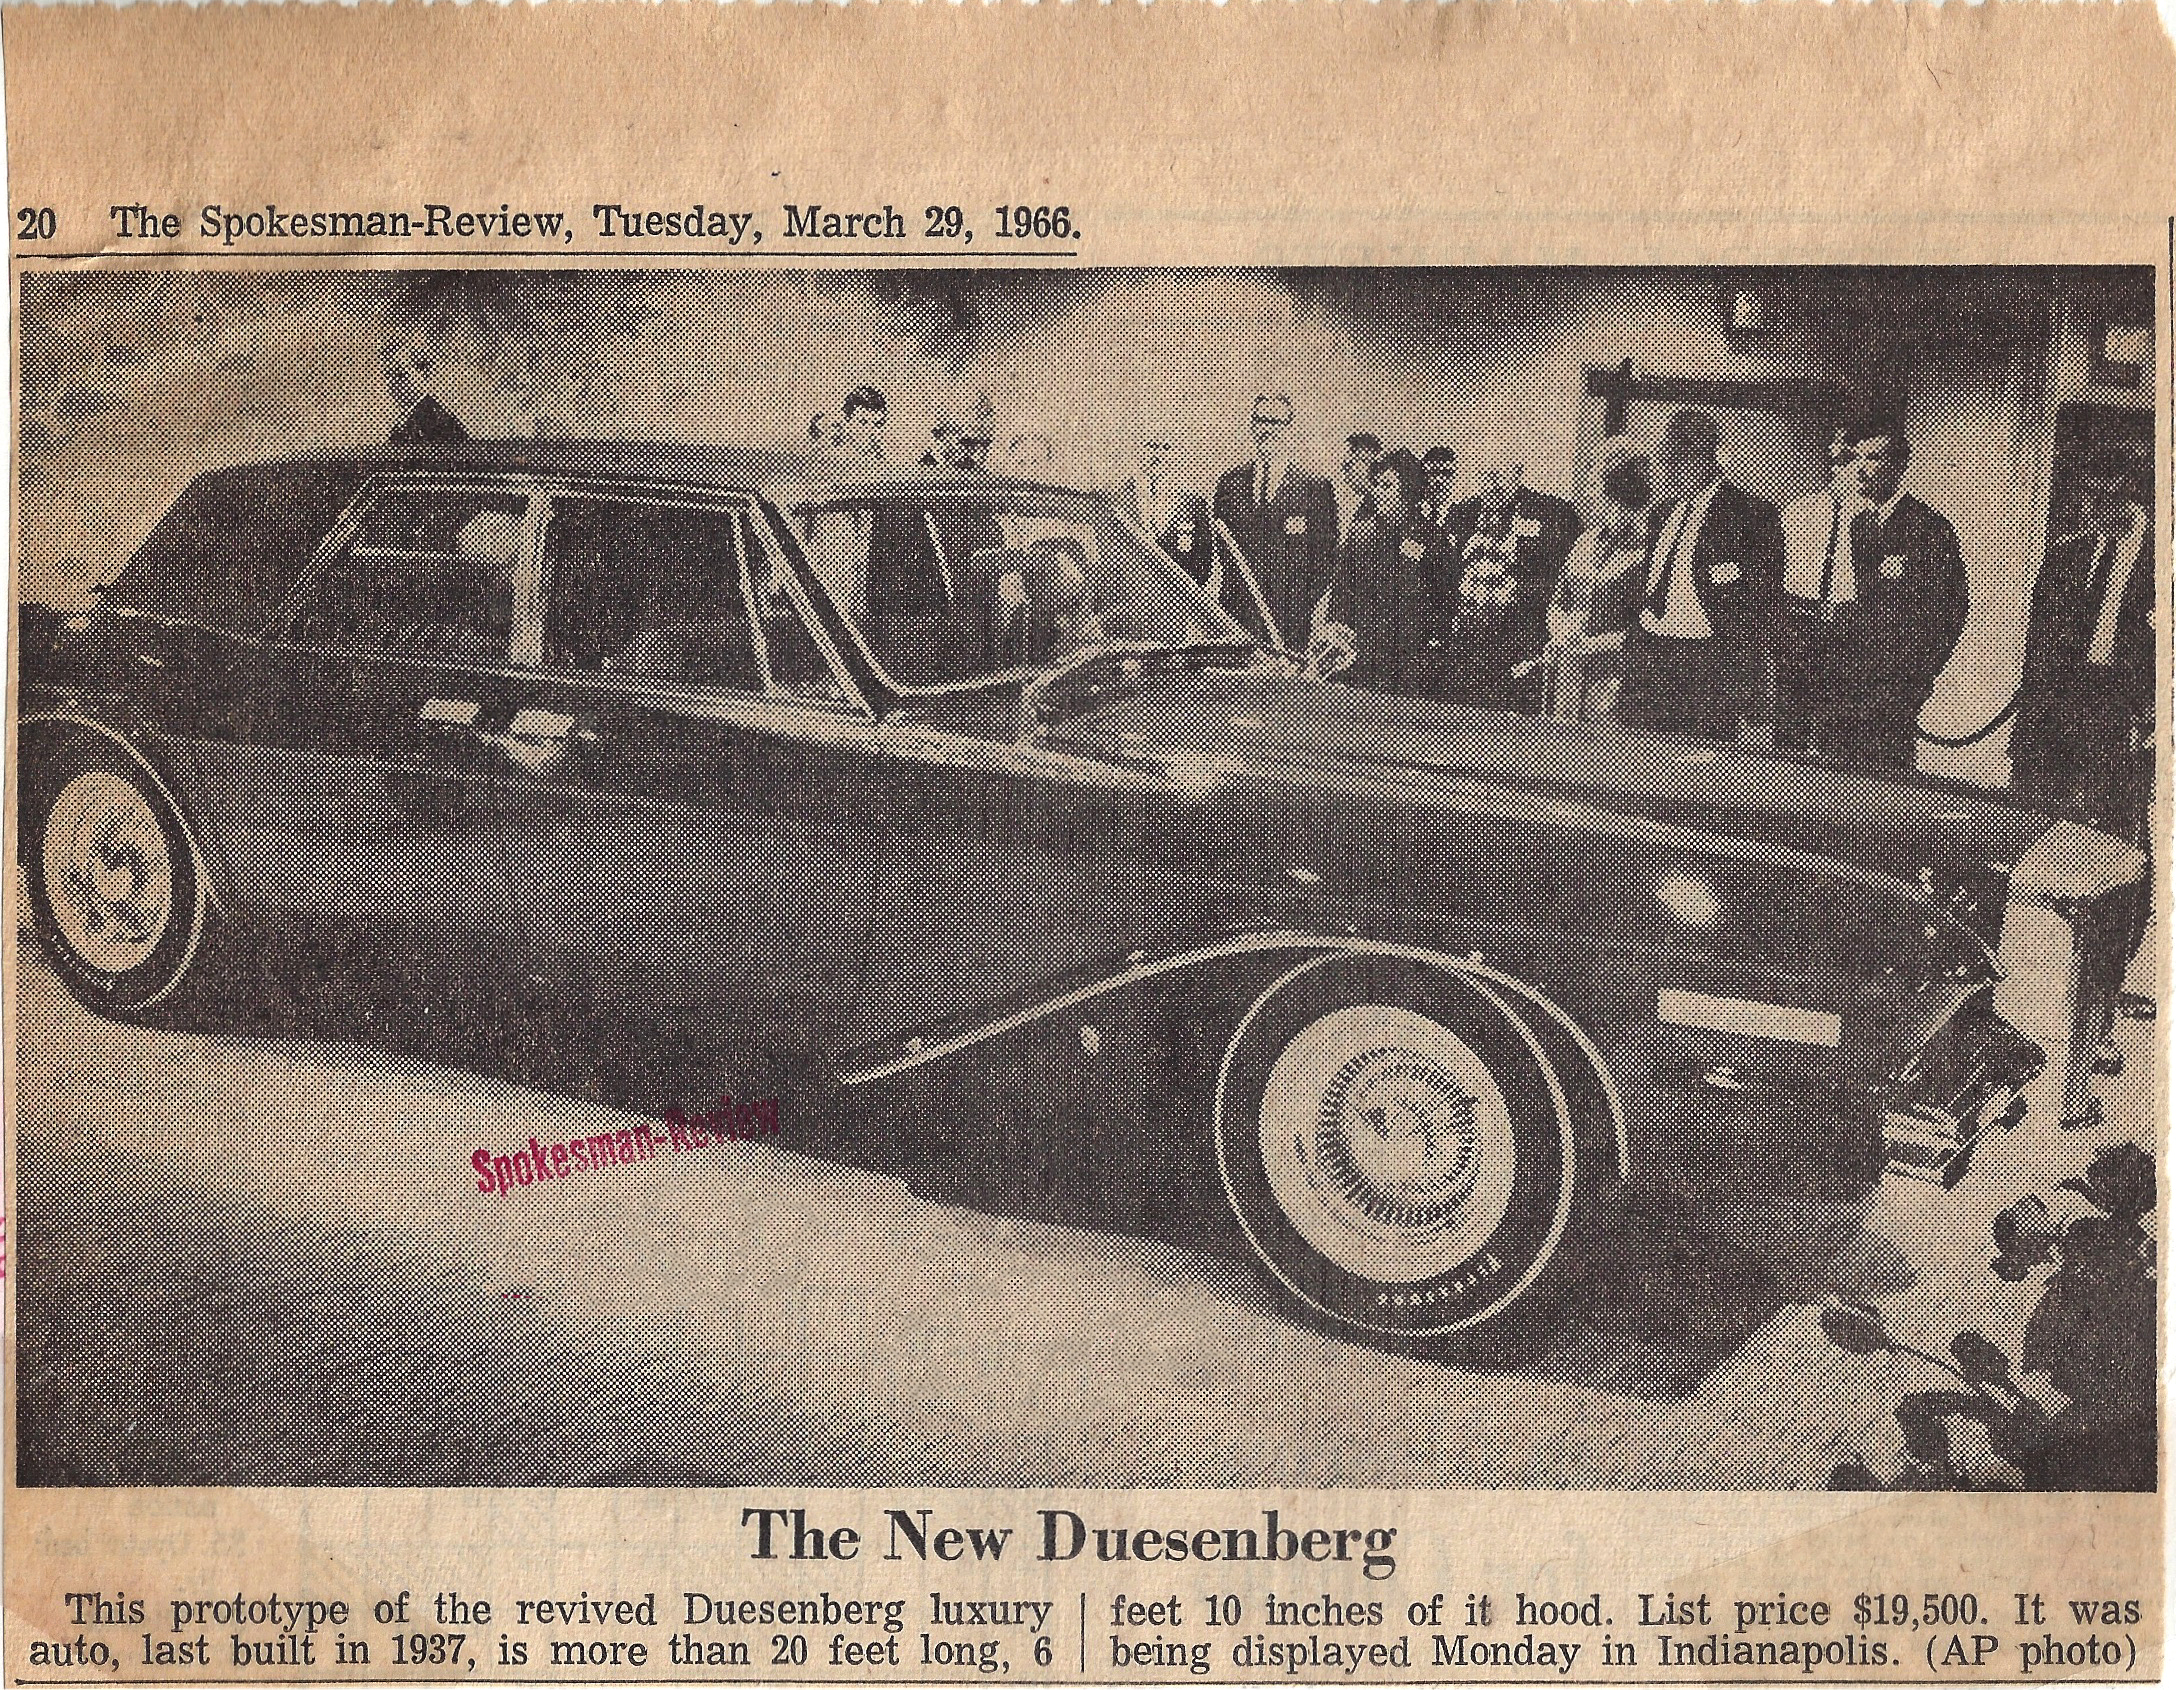 The New Duesenberg, The Spokesman-Review, March 29, 1966